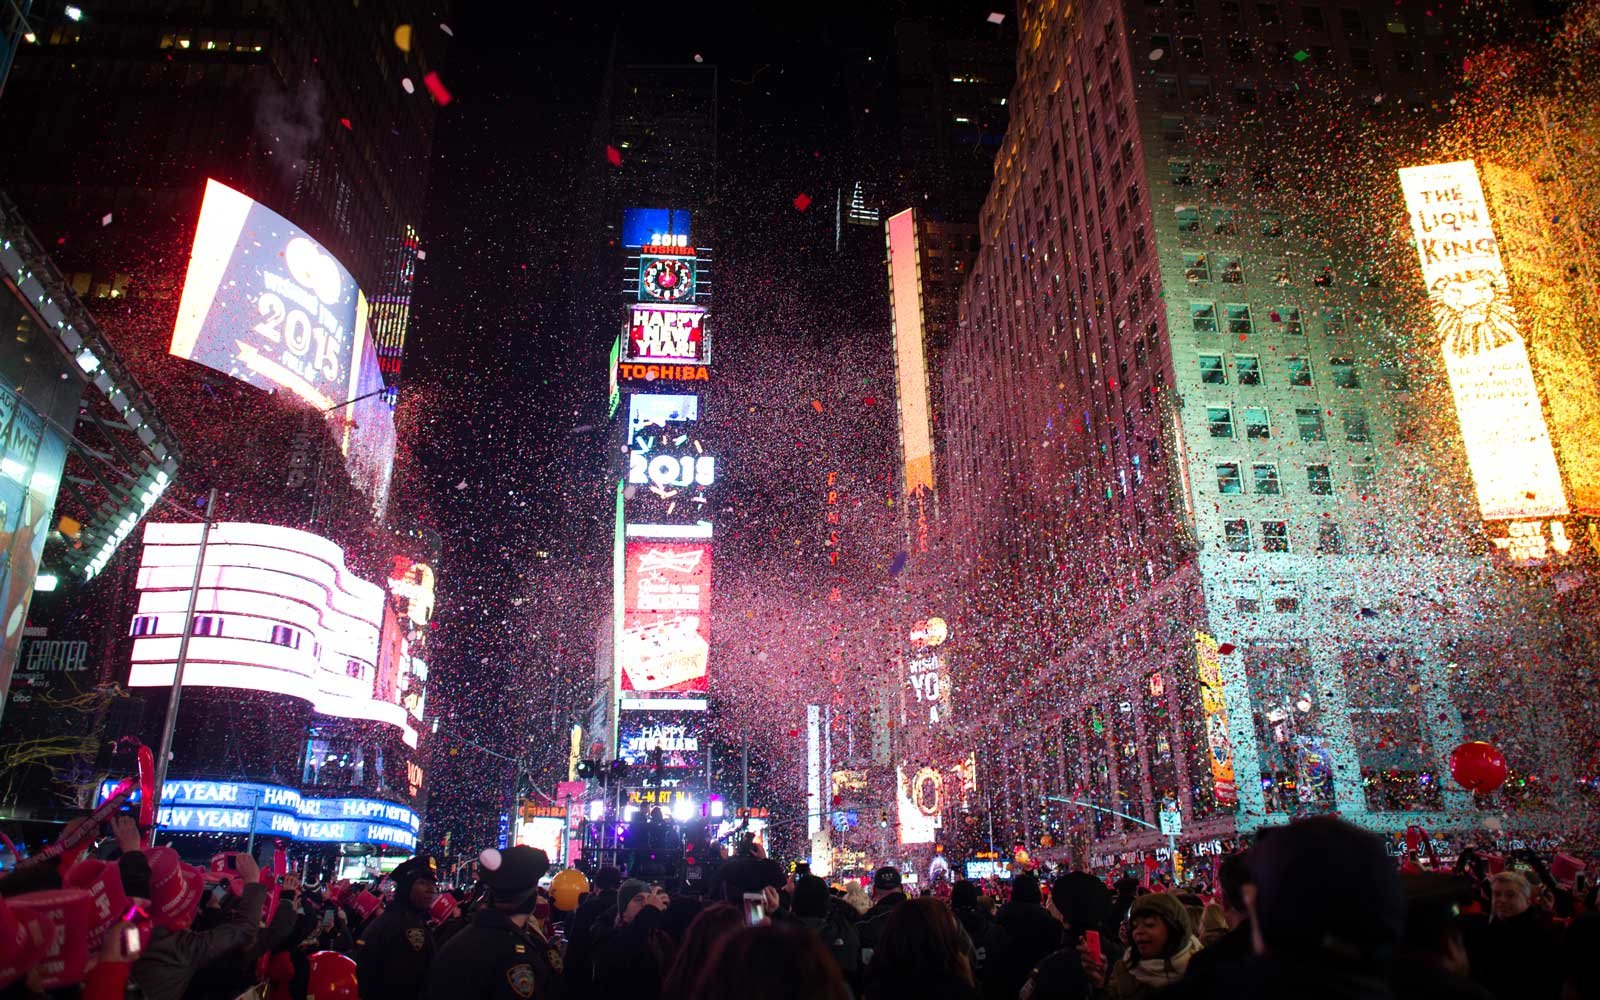 how to book a last minute trip to new york city for new years eve